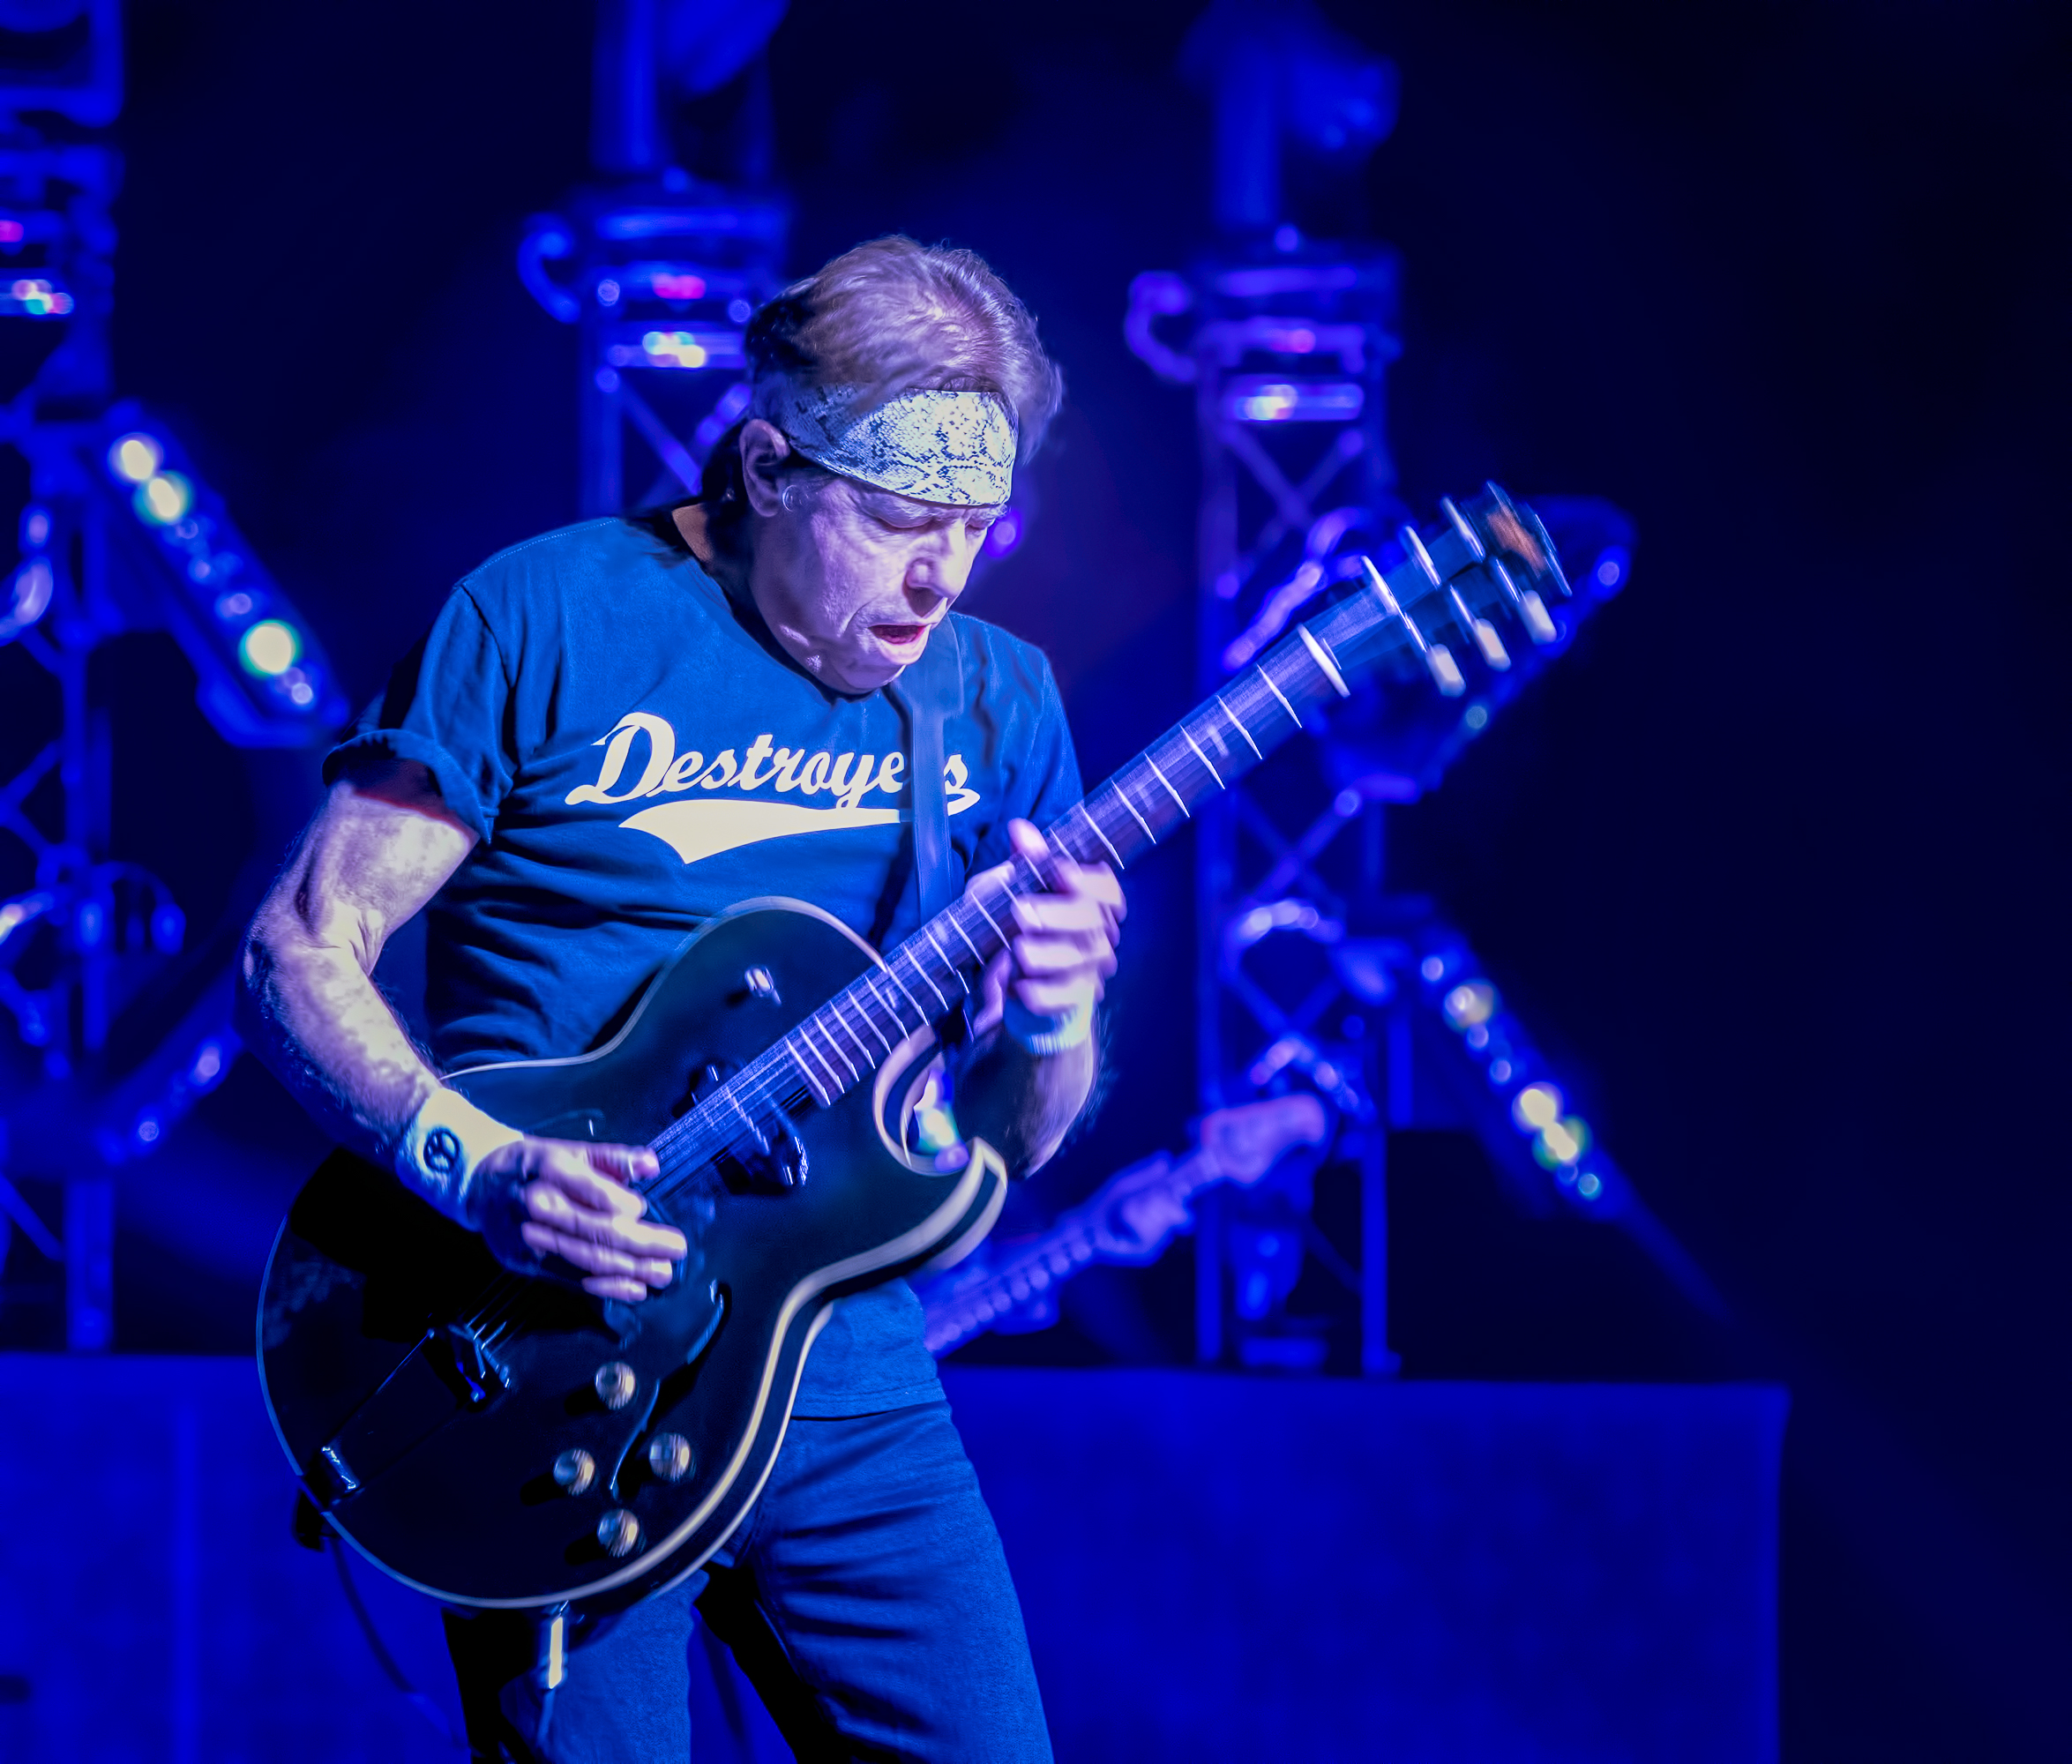 George Thorogood And The Destroyers At The Montreal International Jazz Festival 2018